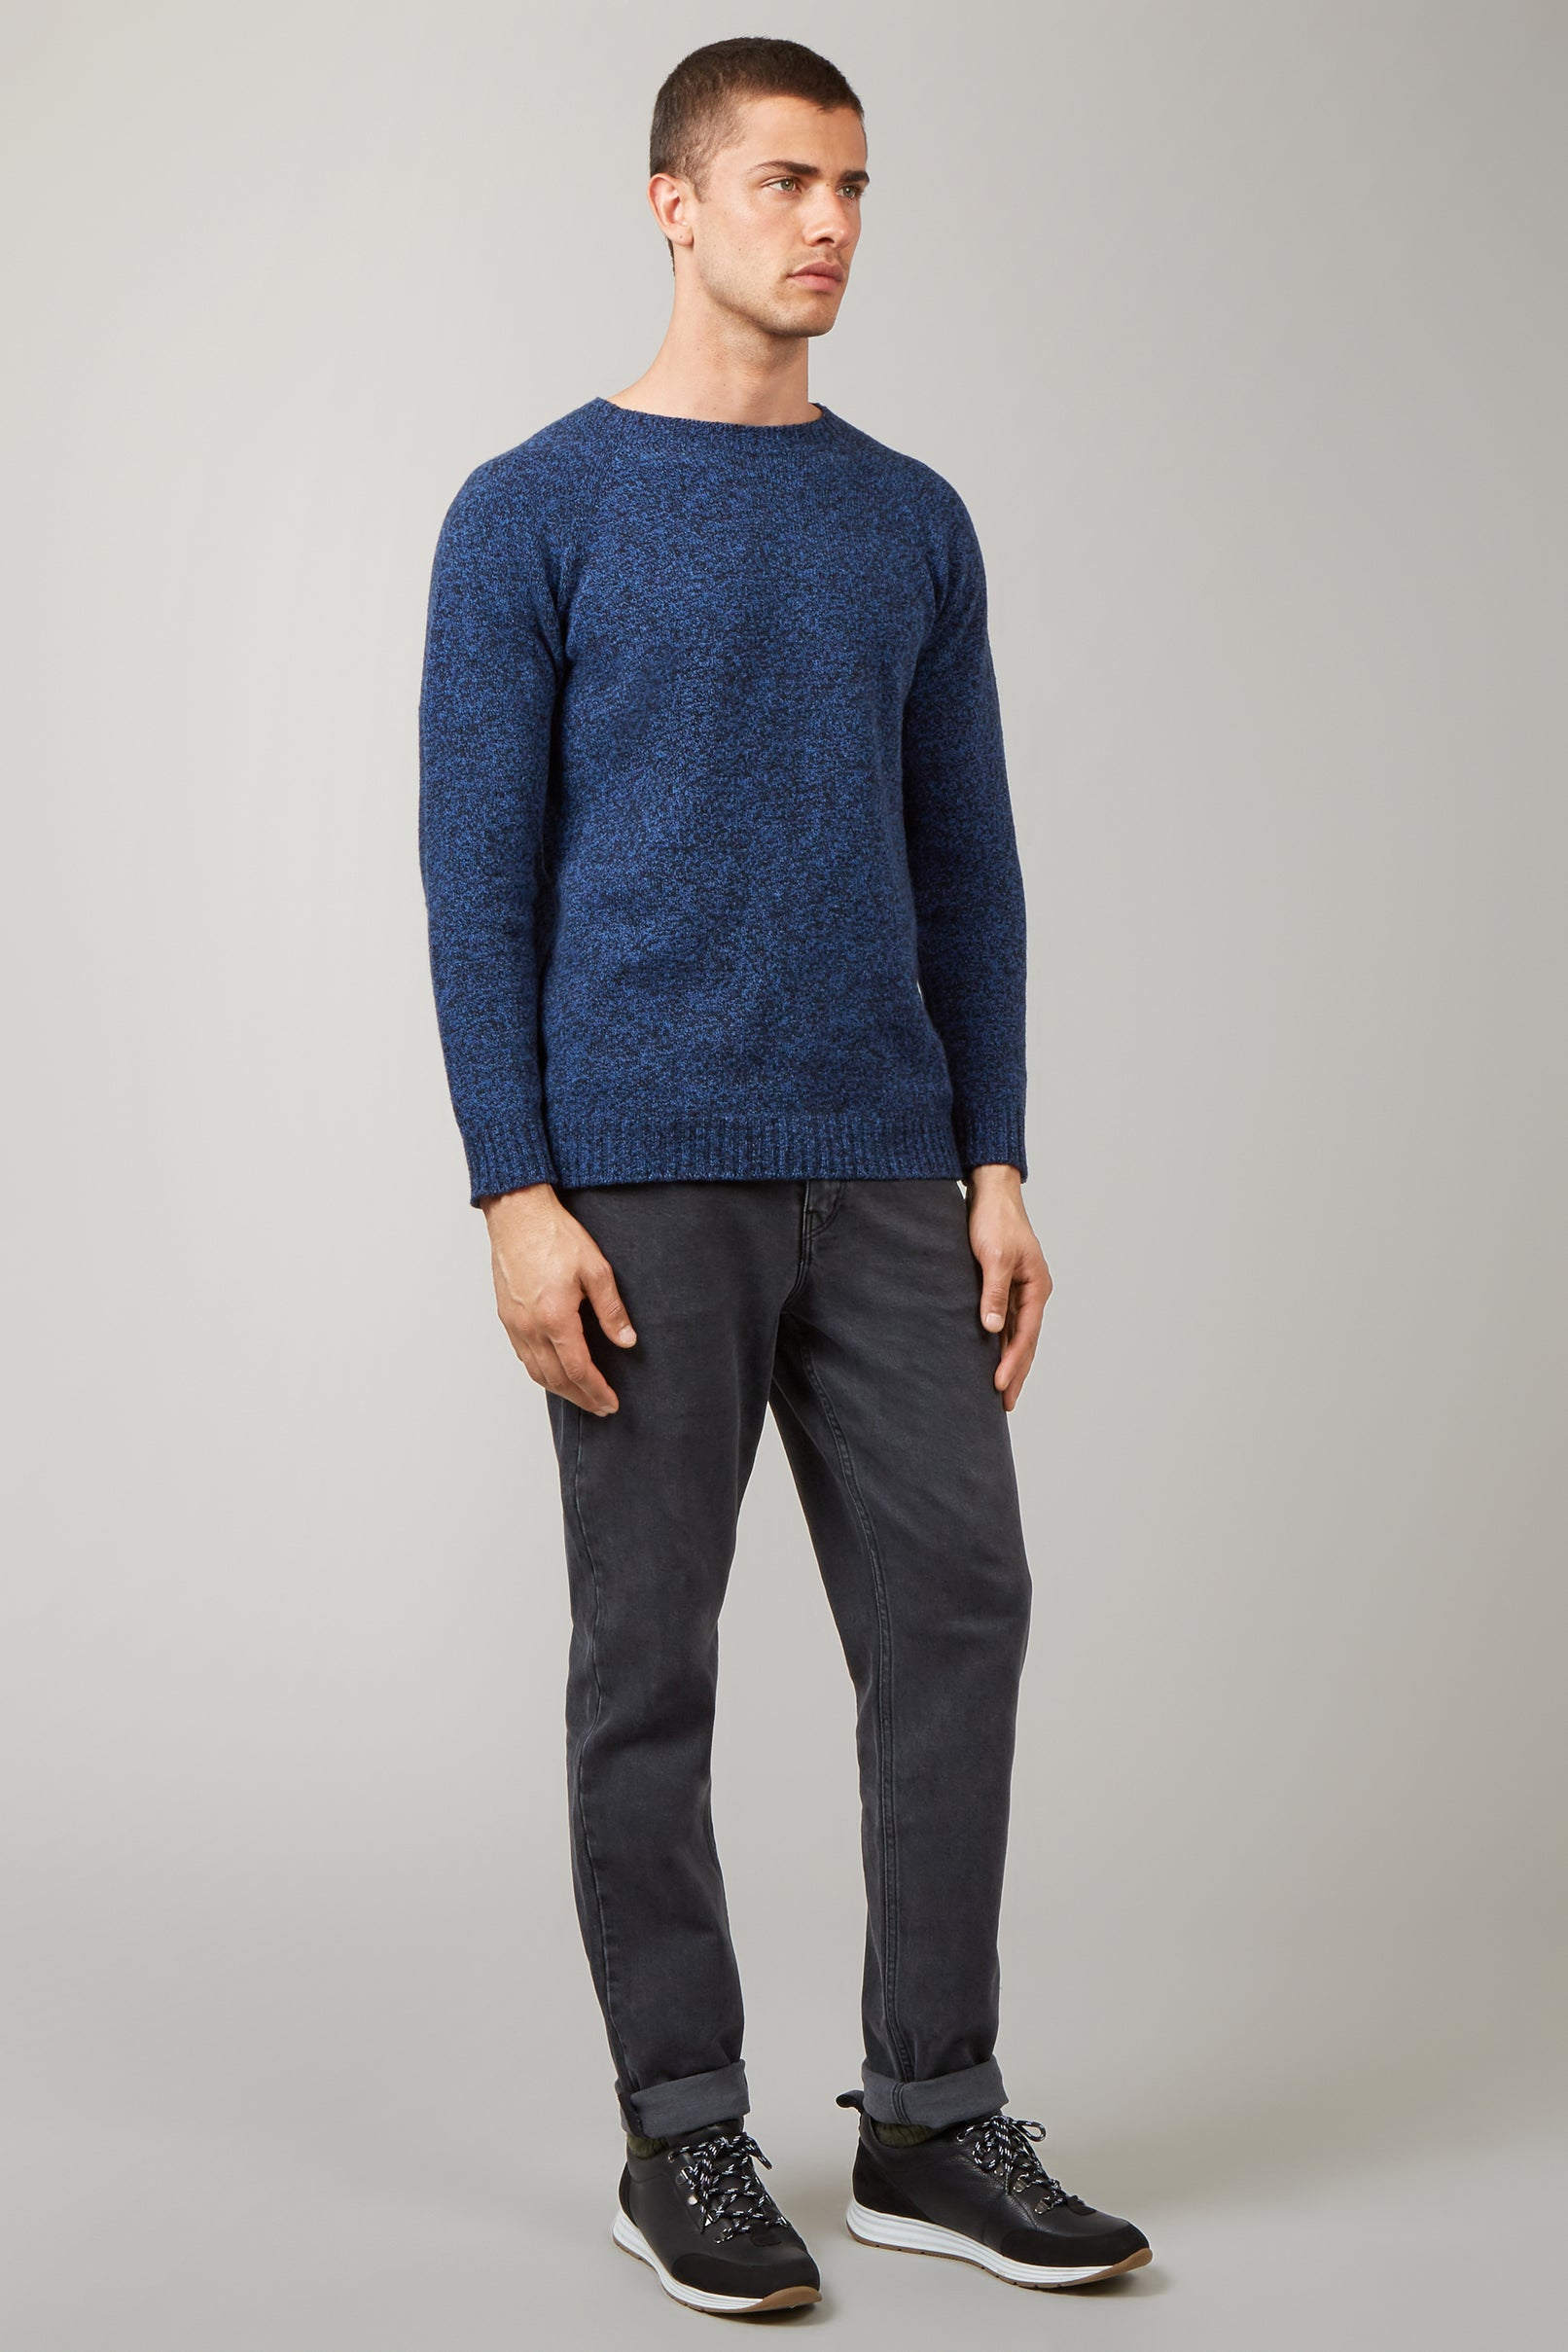 Navy/Indigo Twisted Lambswool Crew Neck